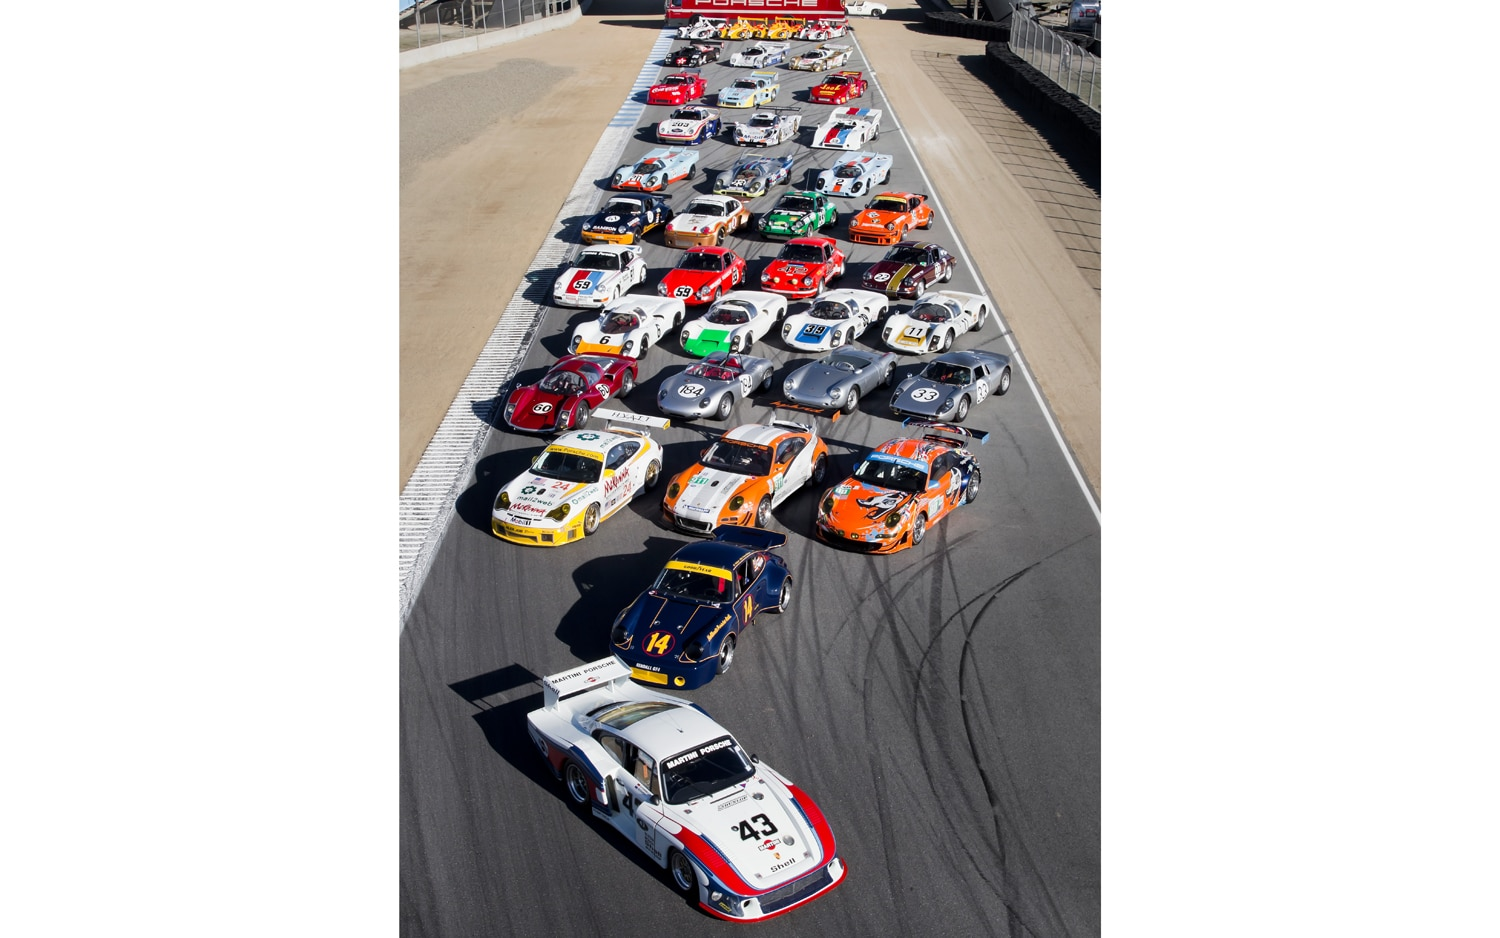 Rennsport Reunion IV Group Photo